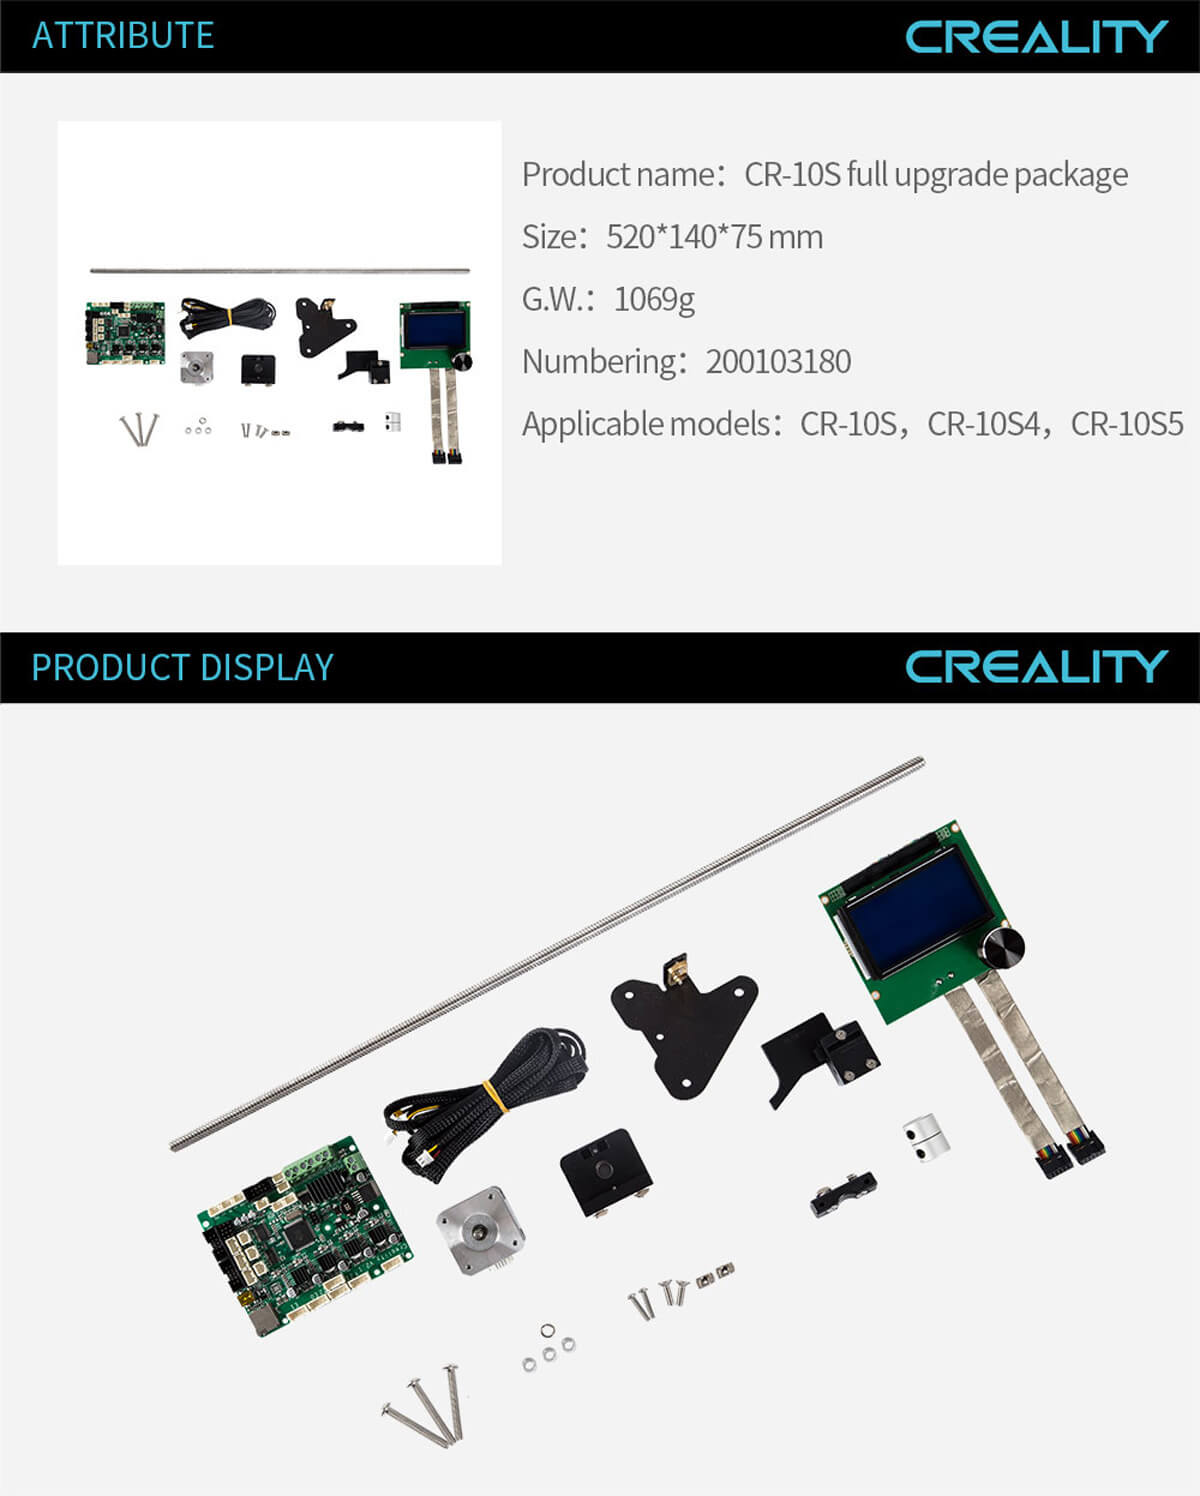 craelity-3d-printer-CR-10S-Full-Upgrade-Package-11